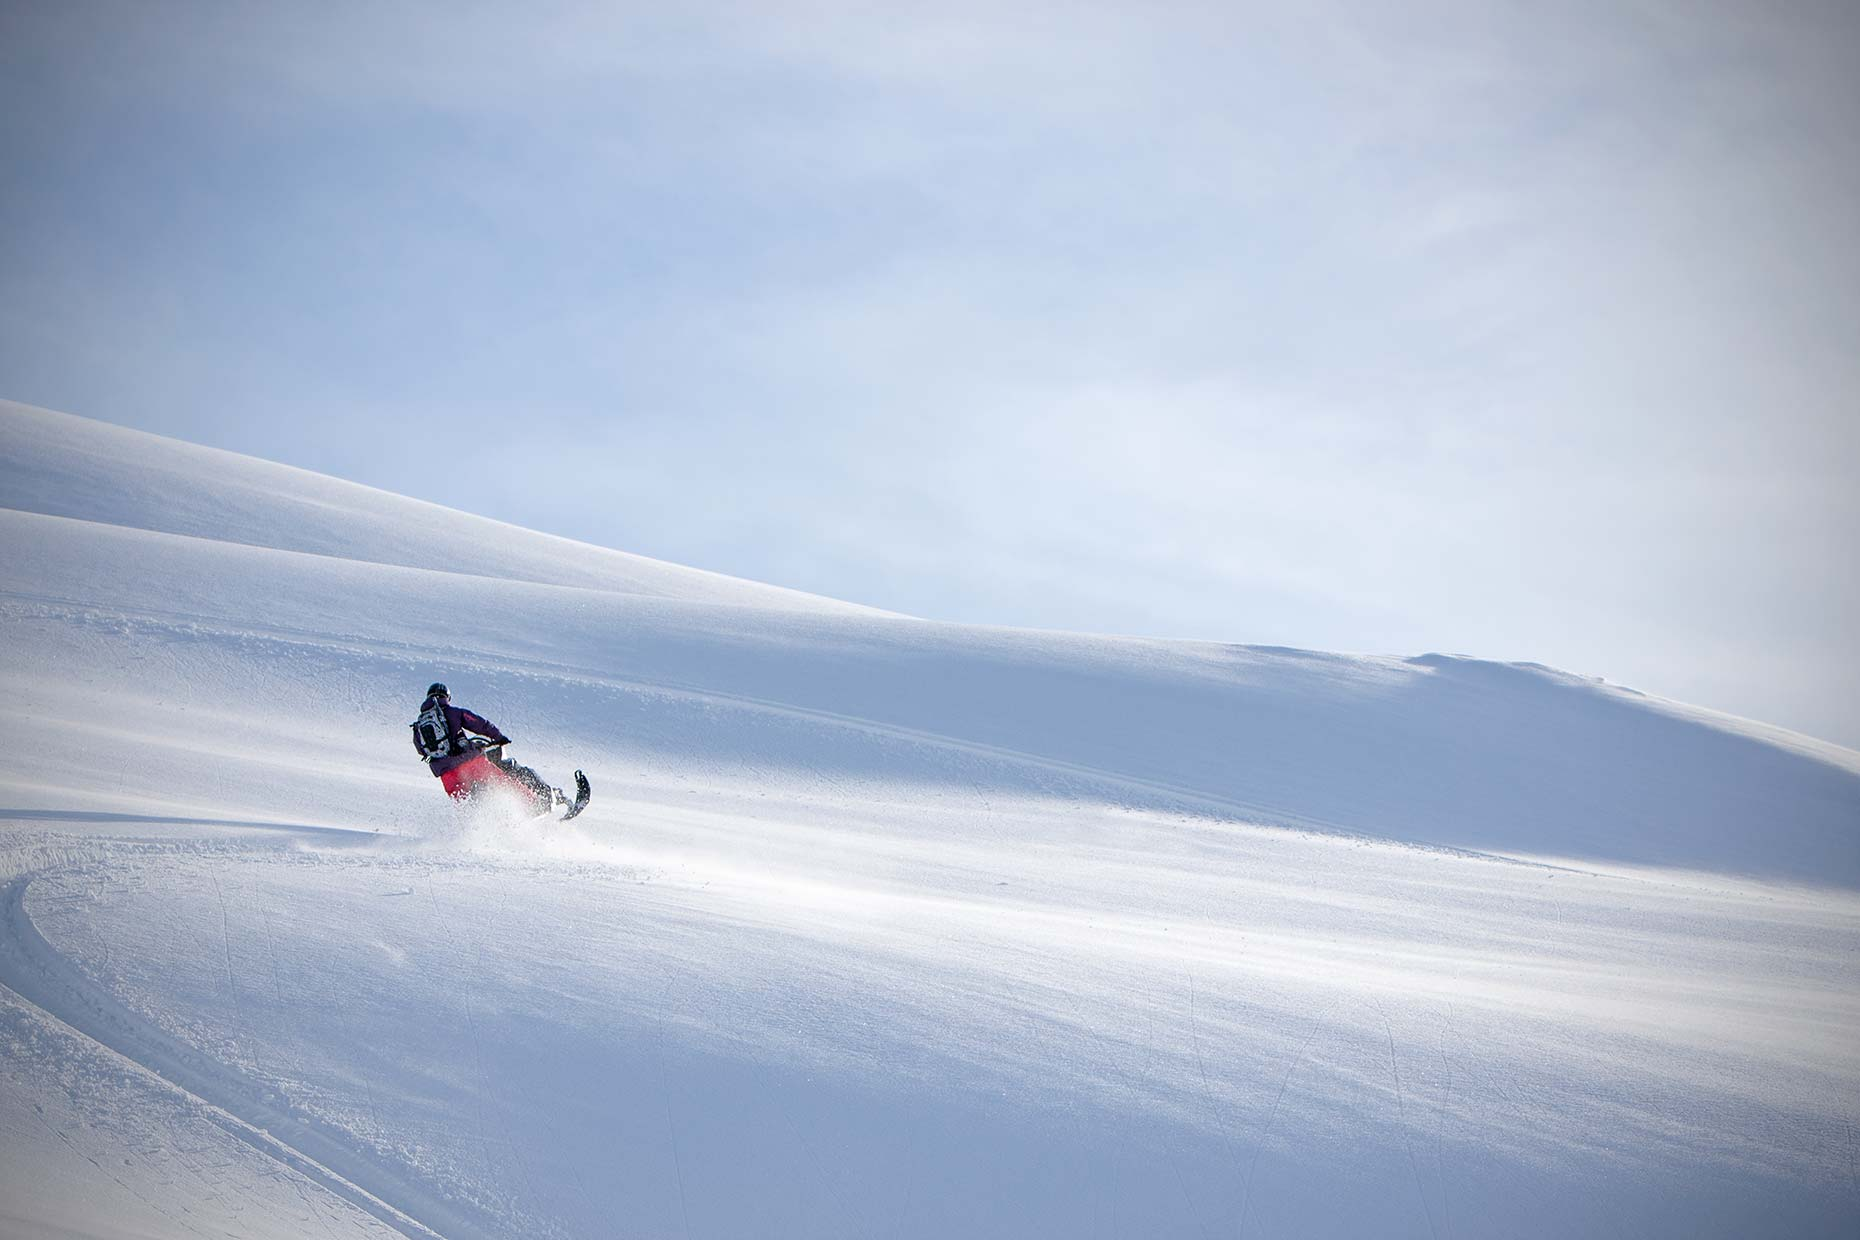 Ian-Coble-Snowmobile-Sledding-Chatter-Creek-BC-Canada